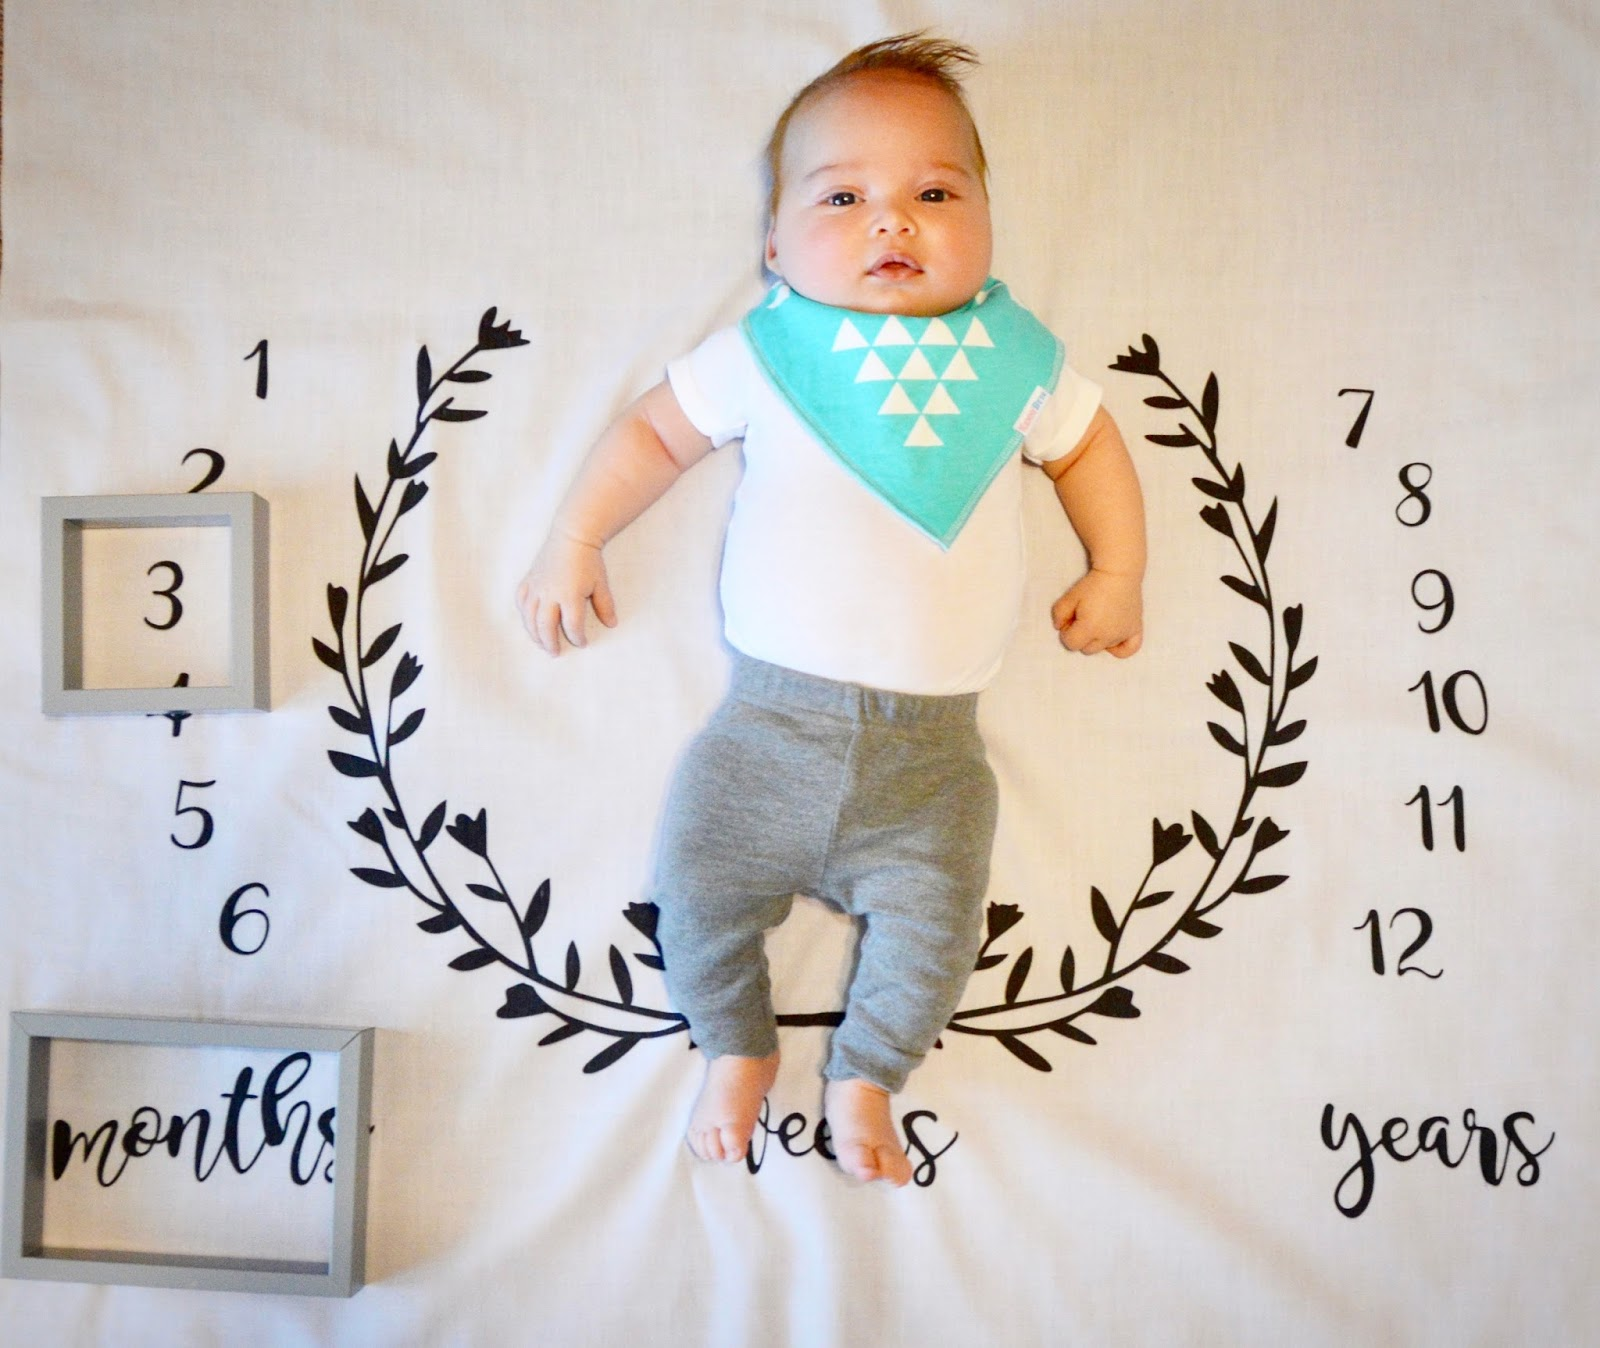 Spear is 3 Months Old!